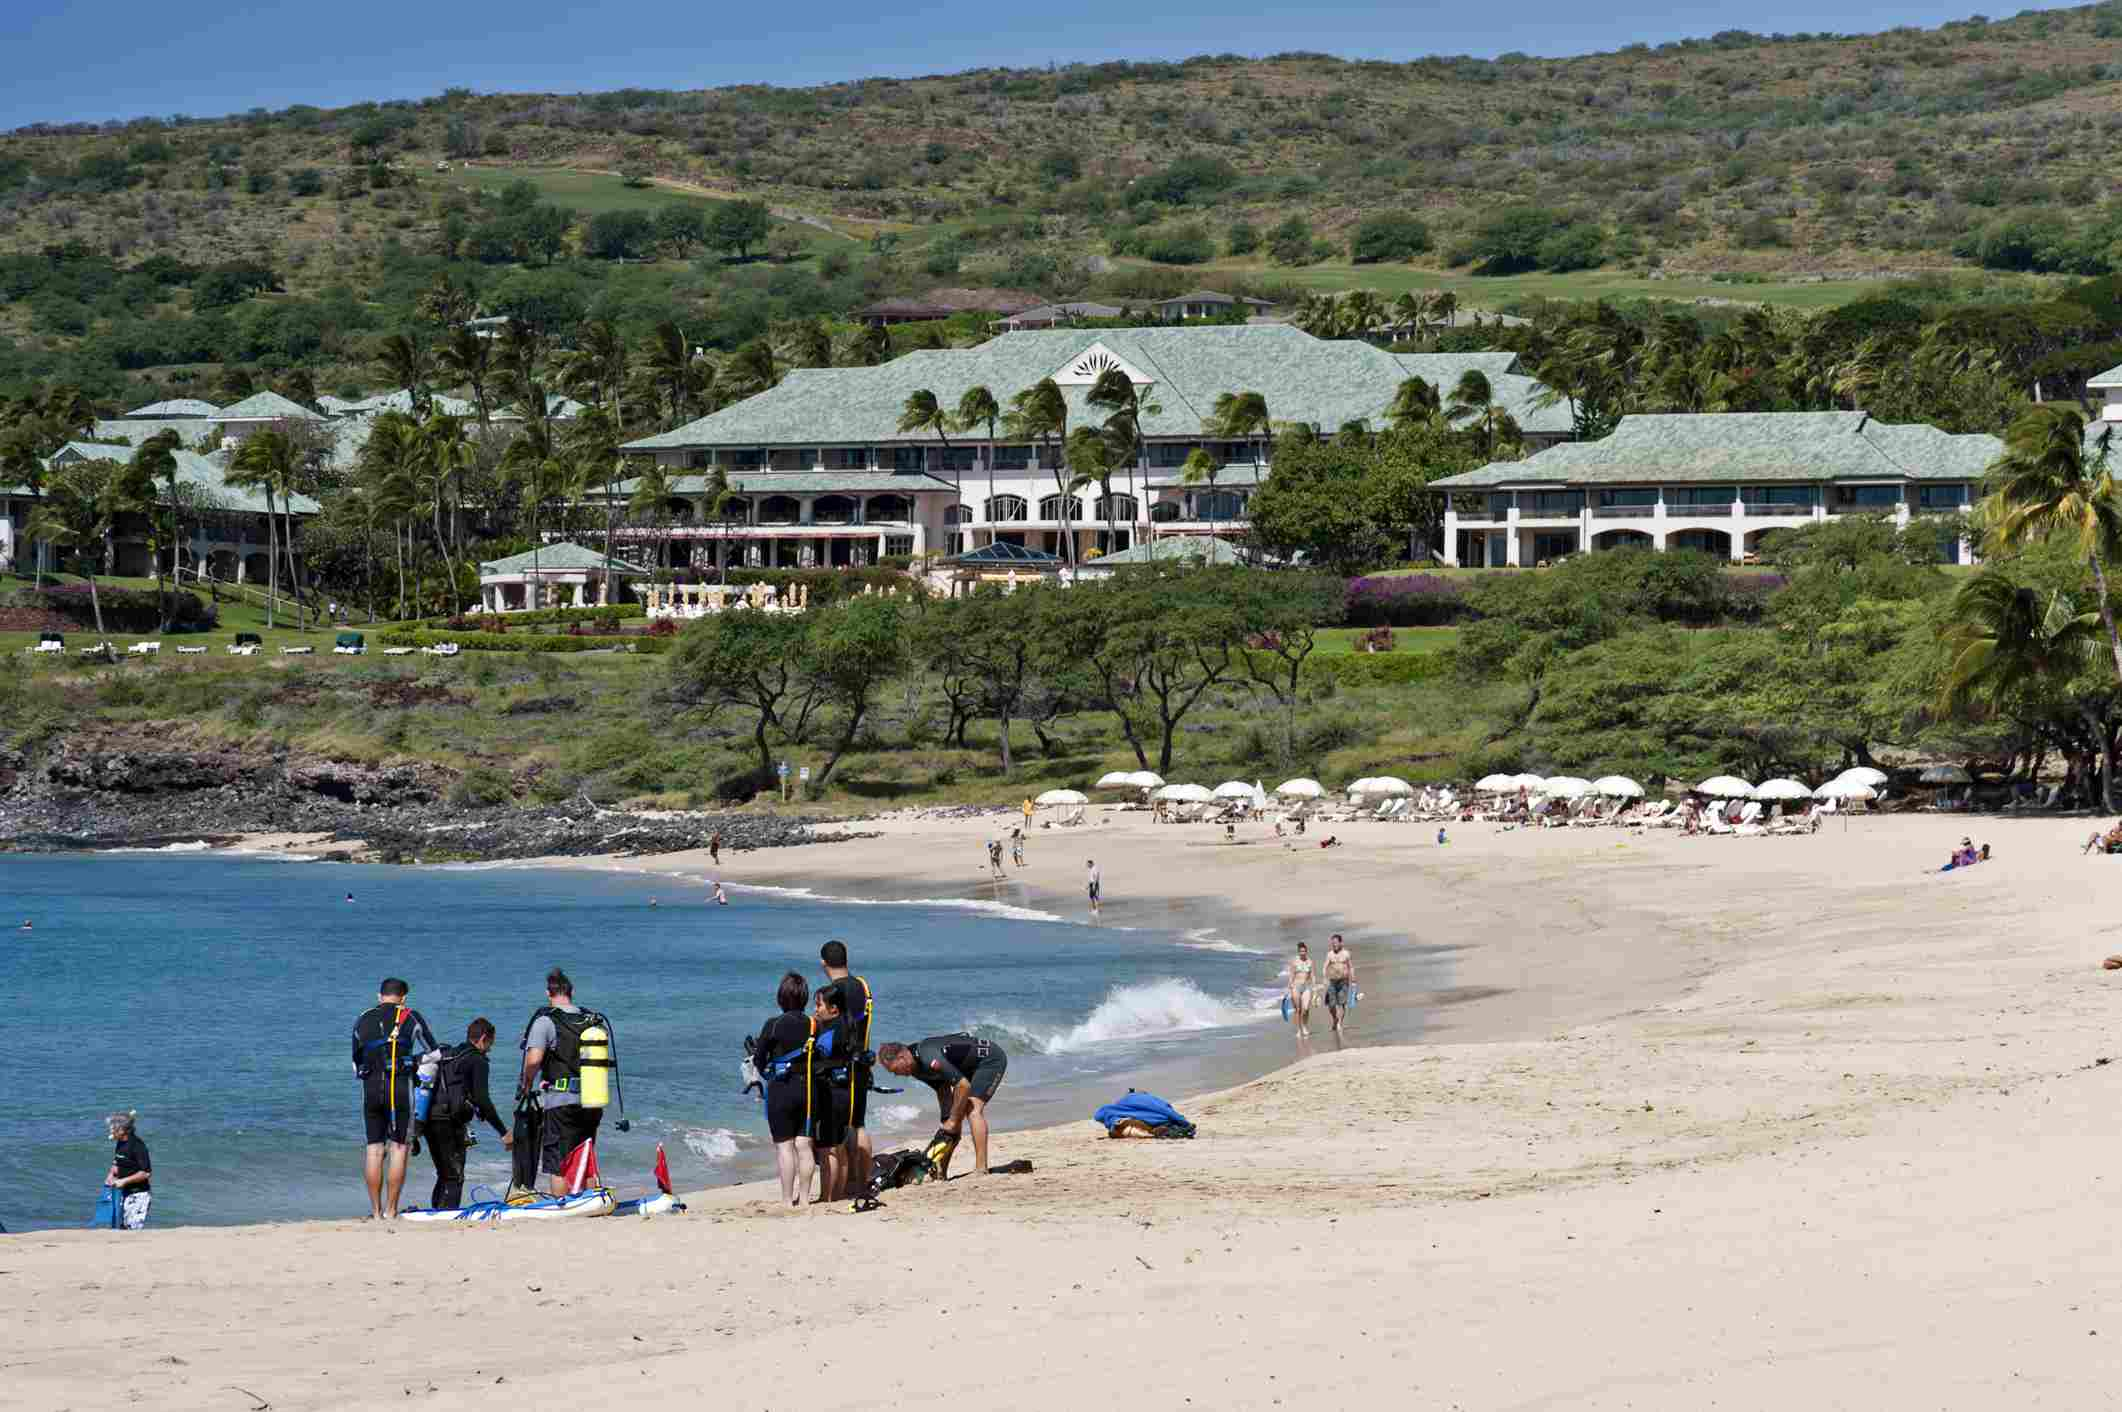 Couples, families, and friends enjoy a day at the beach adjacent to the Manele Bay Hotel on the Island of Lanai